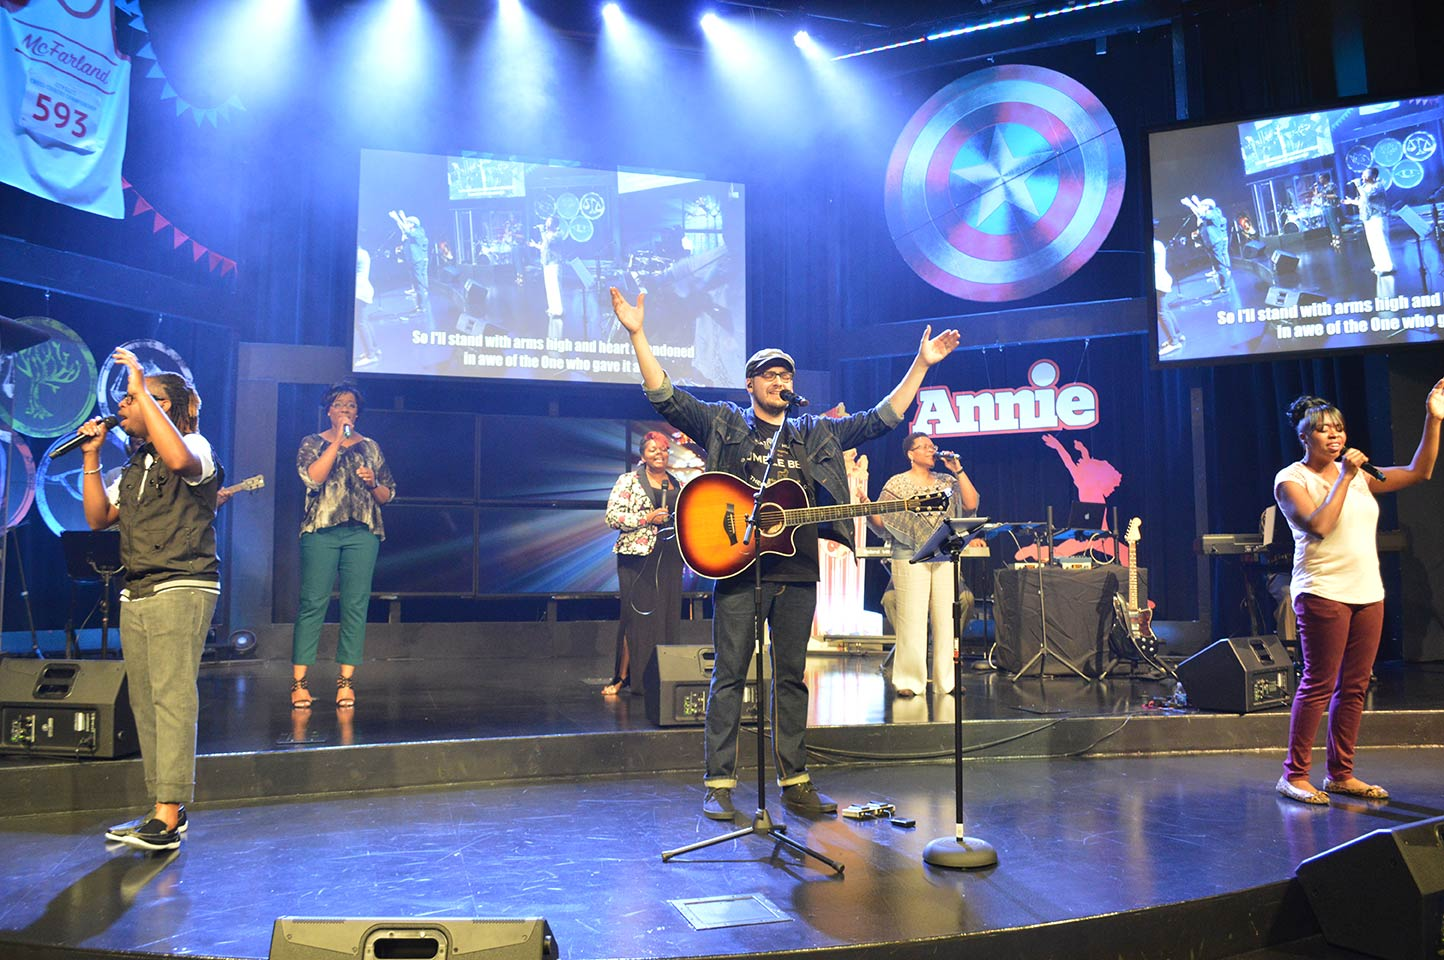 It felt GREAT to worship with our CLC family again - we missed you during our sabbatical!  And I love that last song: